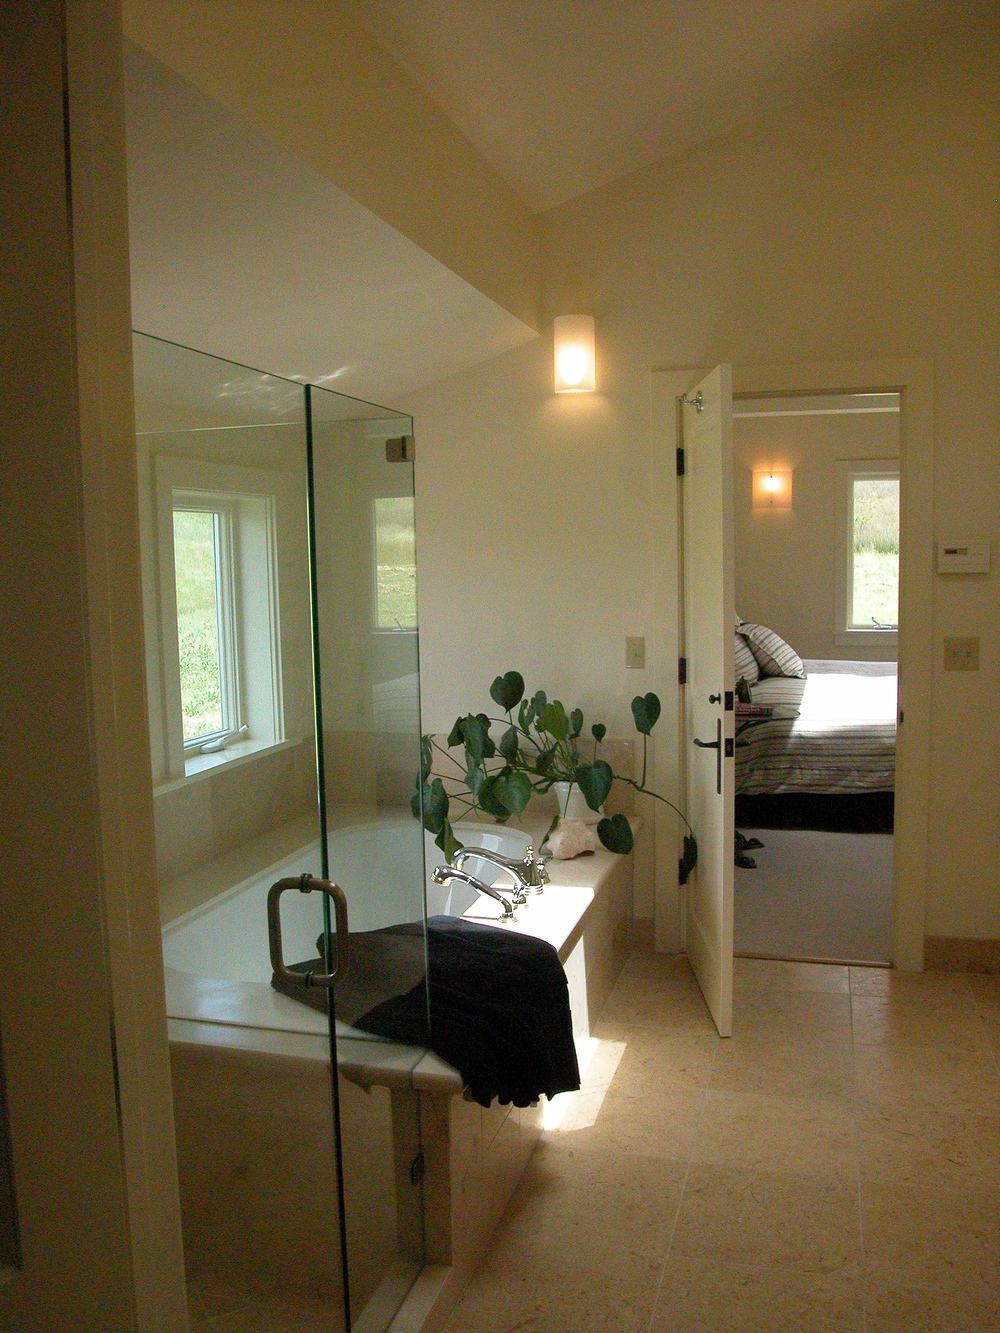 00_MasterBath_Tub_Shower1_Oak Glen.JPG